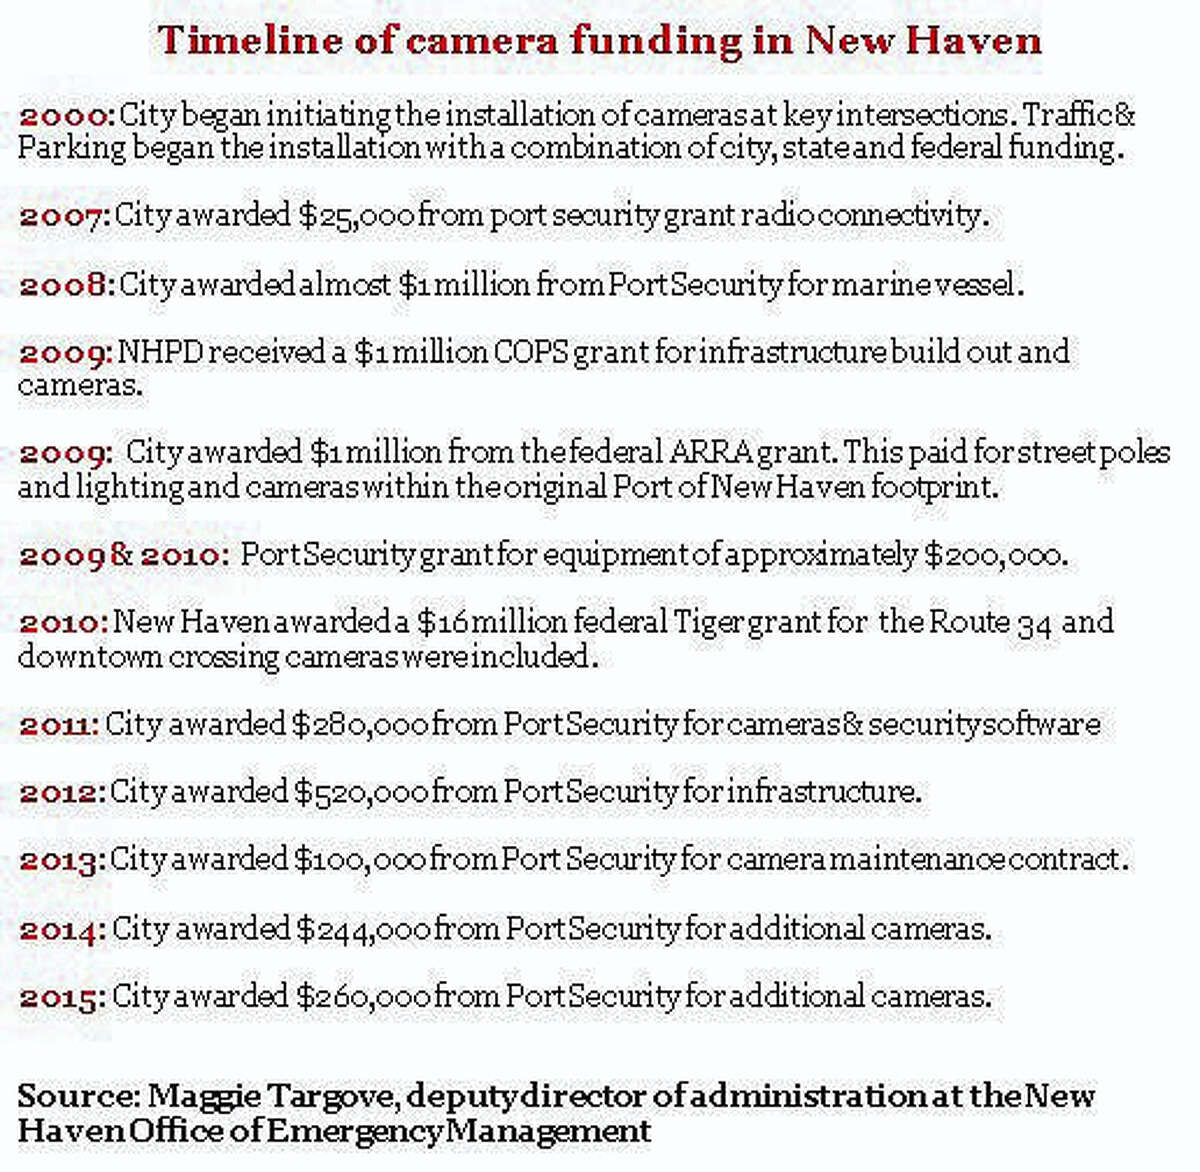 Timeline of camera funding in New Haven 2000 to 2016